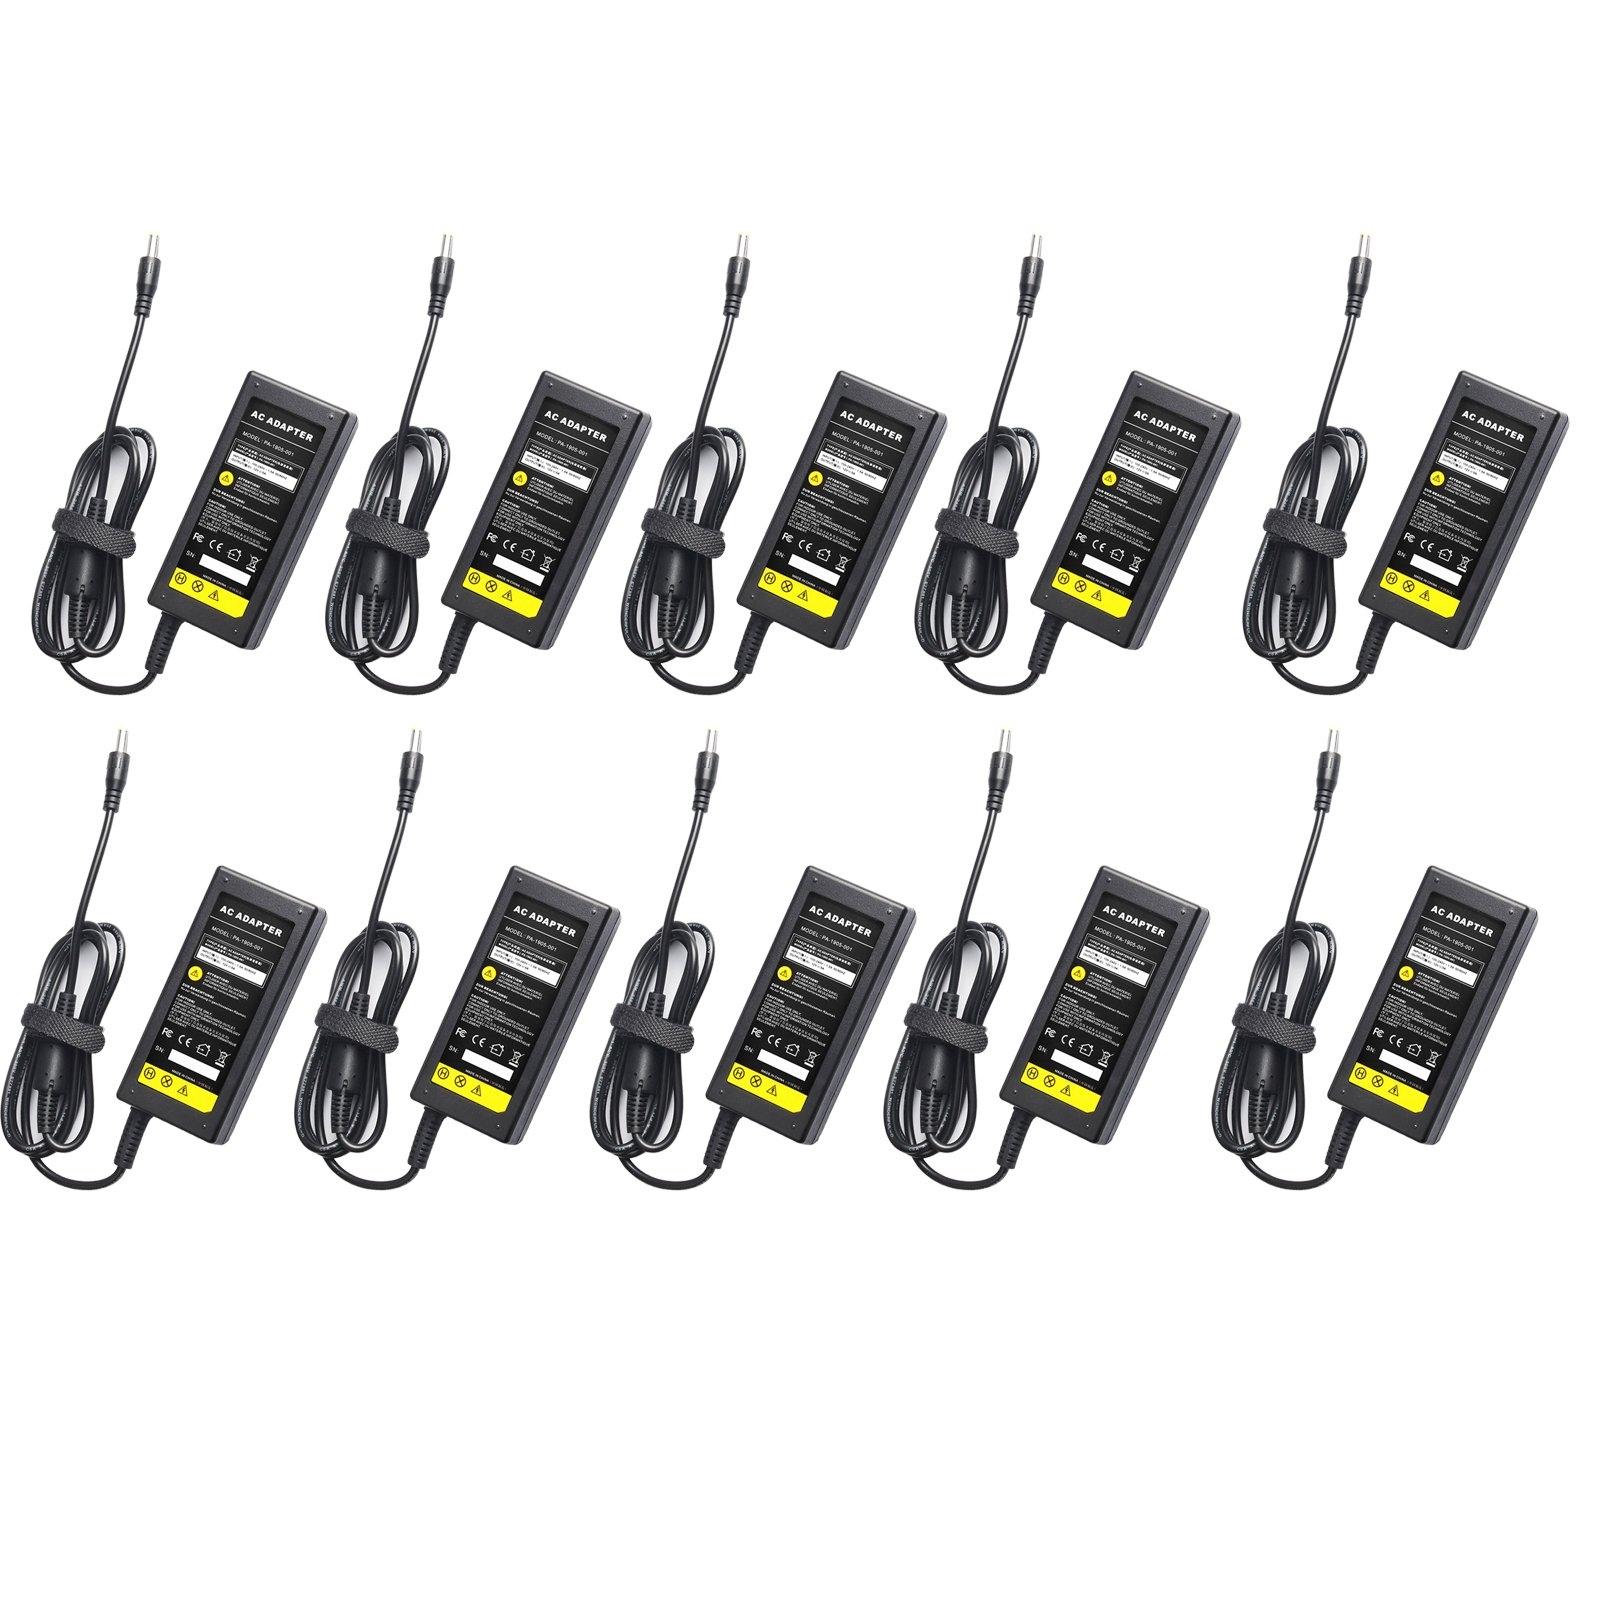 Pack-10 12V 5A Power Supply Adapter with 8 Split Power Cable for Security Camera CCTV DVR Surveillance System